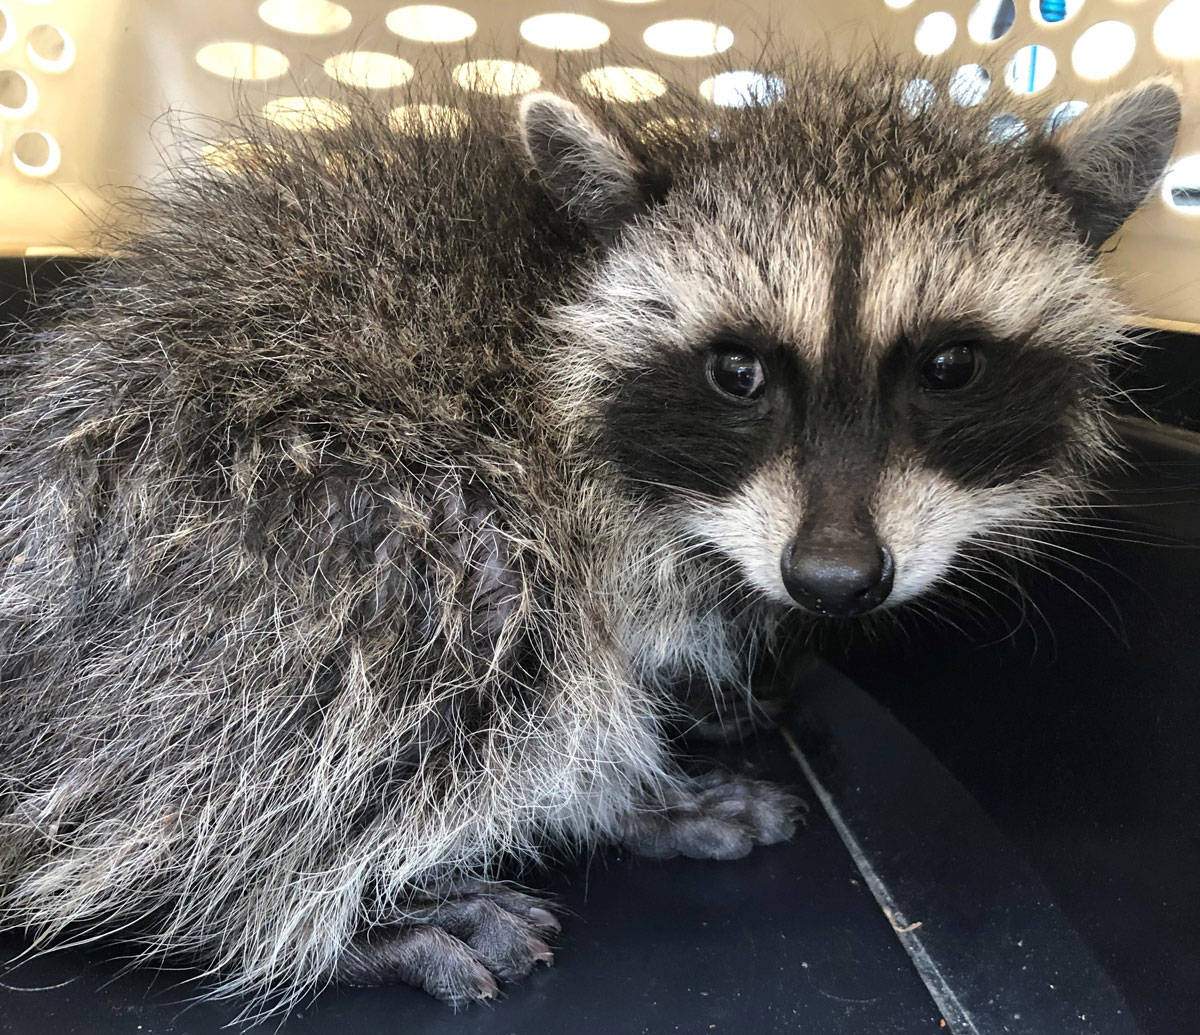 Mike Gibson, an animal control officer with Saanich Police Department, was called to rescue a baby raccoon that had gotten stuck in a drainage pipe on July 10. (Photo submitted by Mike Gibson)